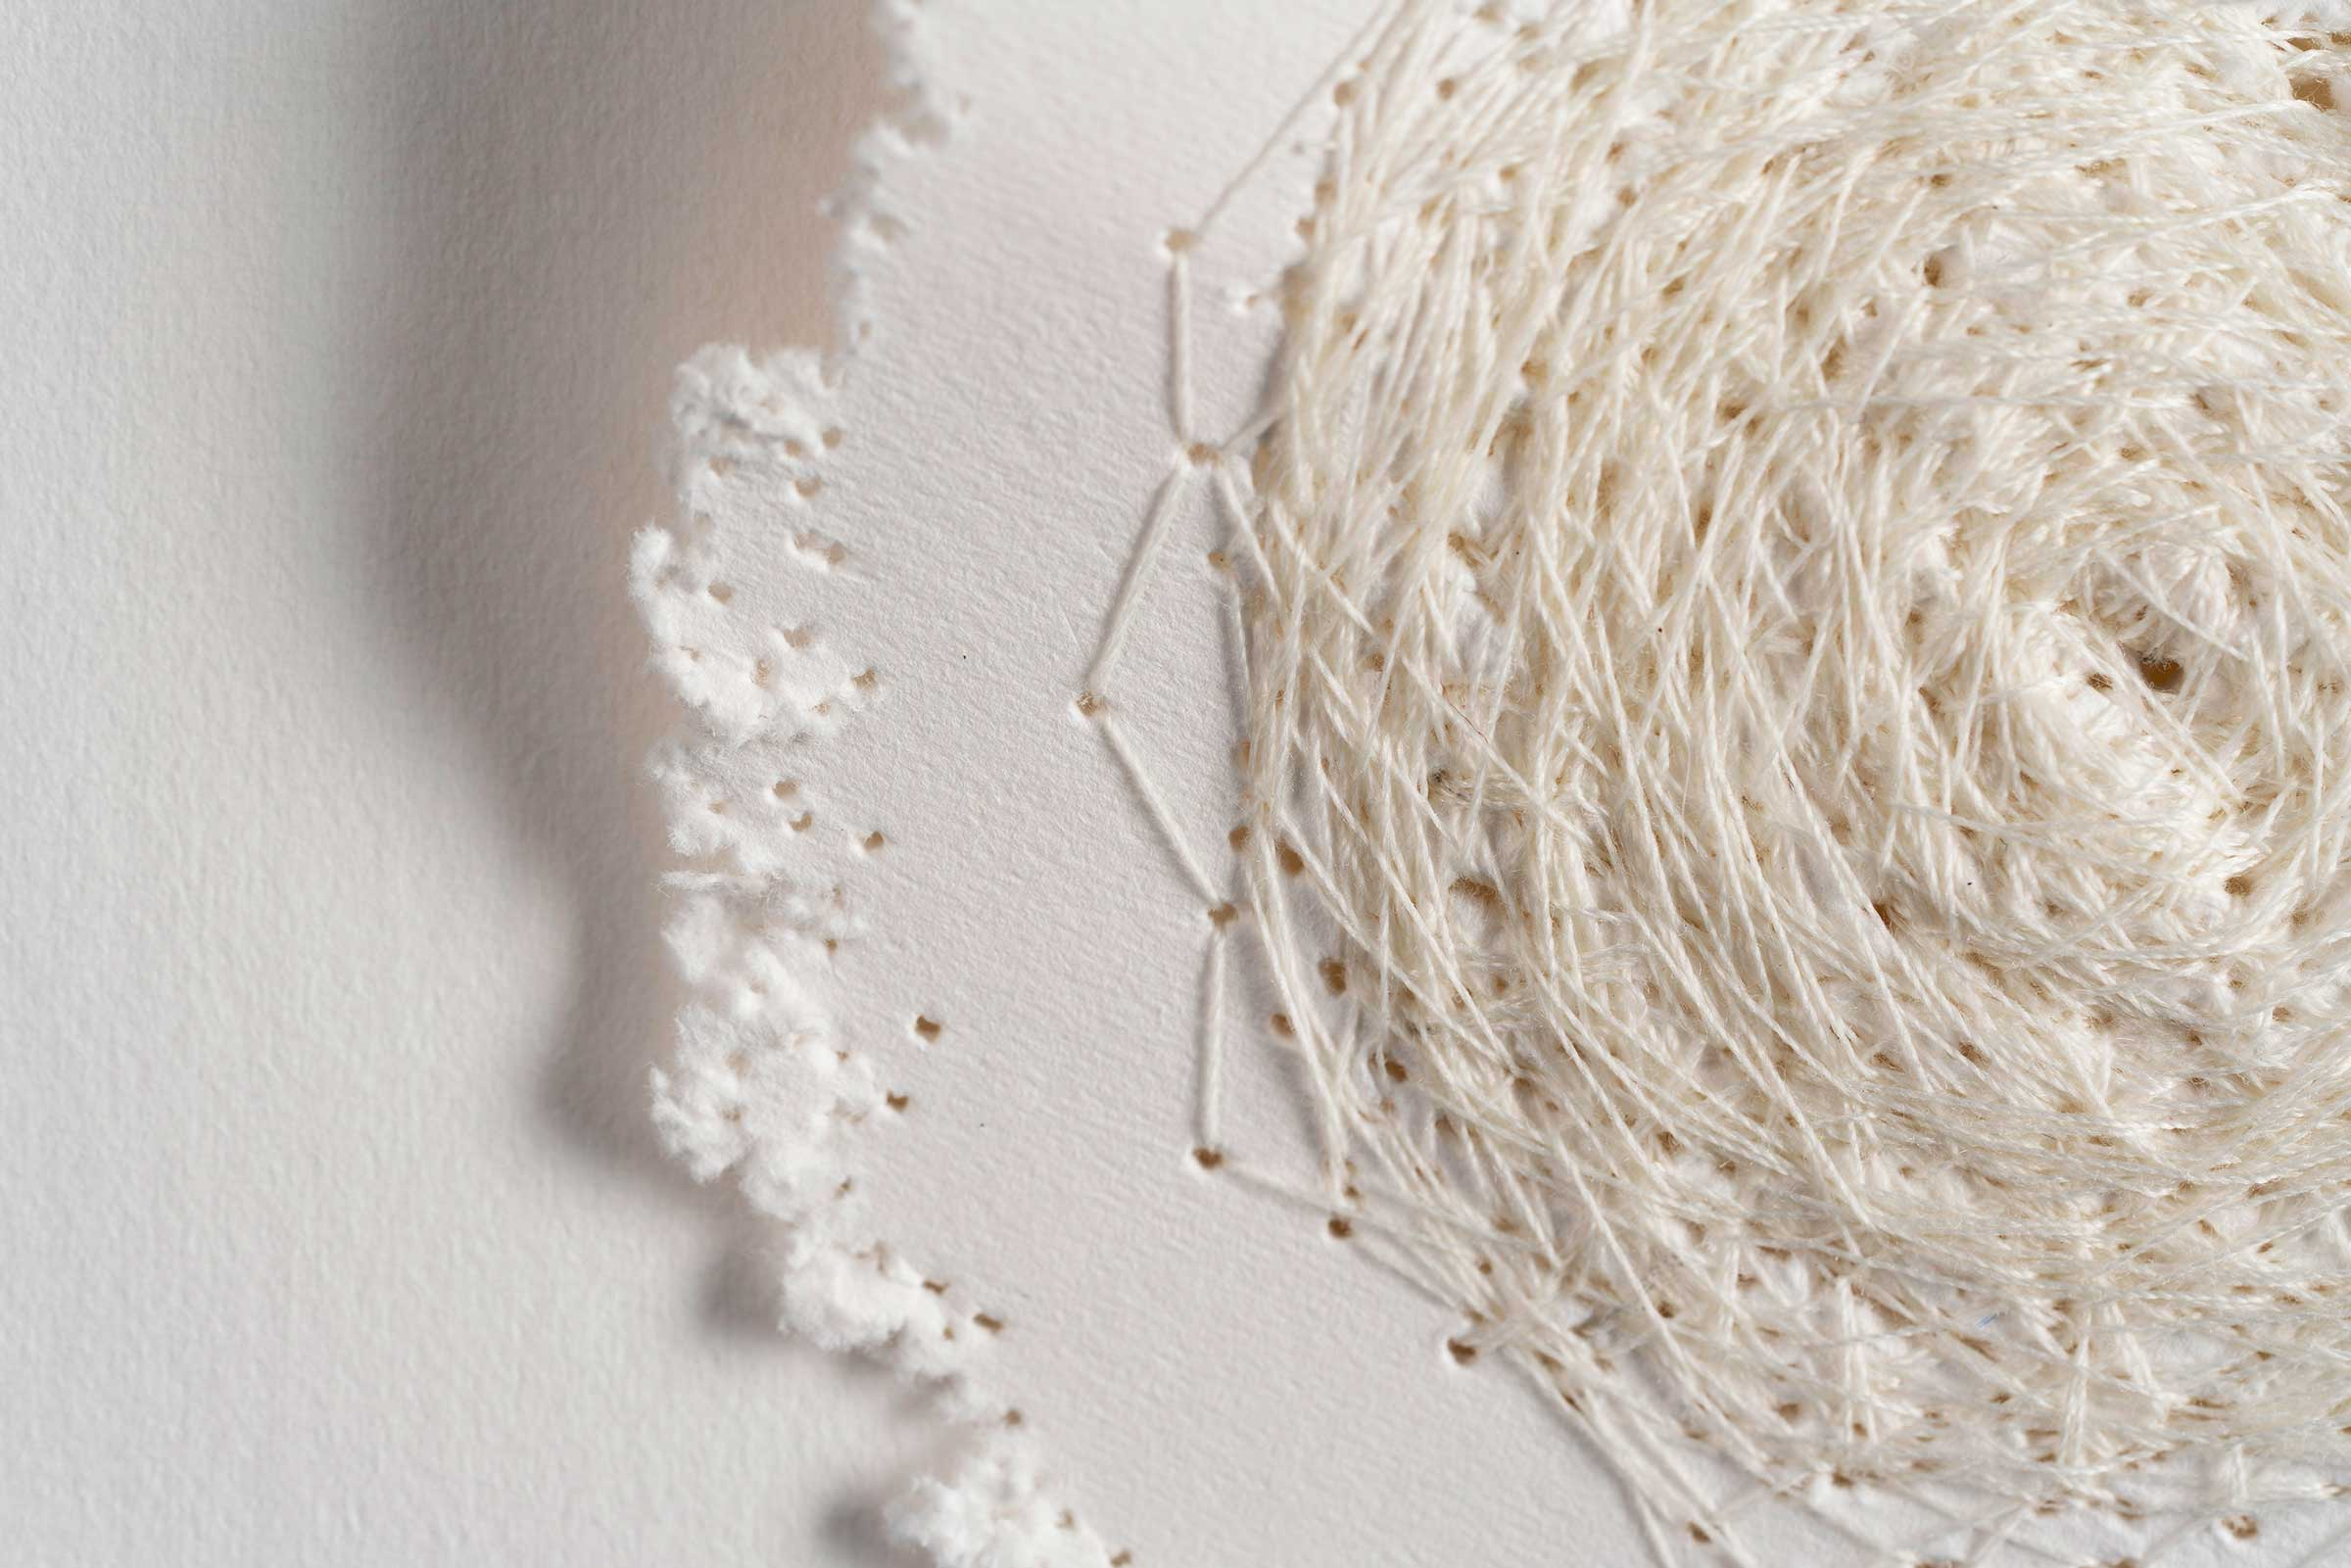 Kelly M O'Brien,  Stitch No. 2  (detail). Paper, cotton thread. 20 x 27.5 in | 50 x 70 cm ©2019